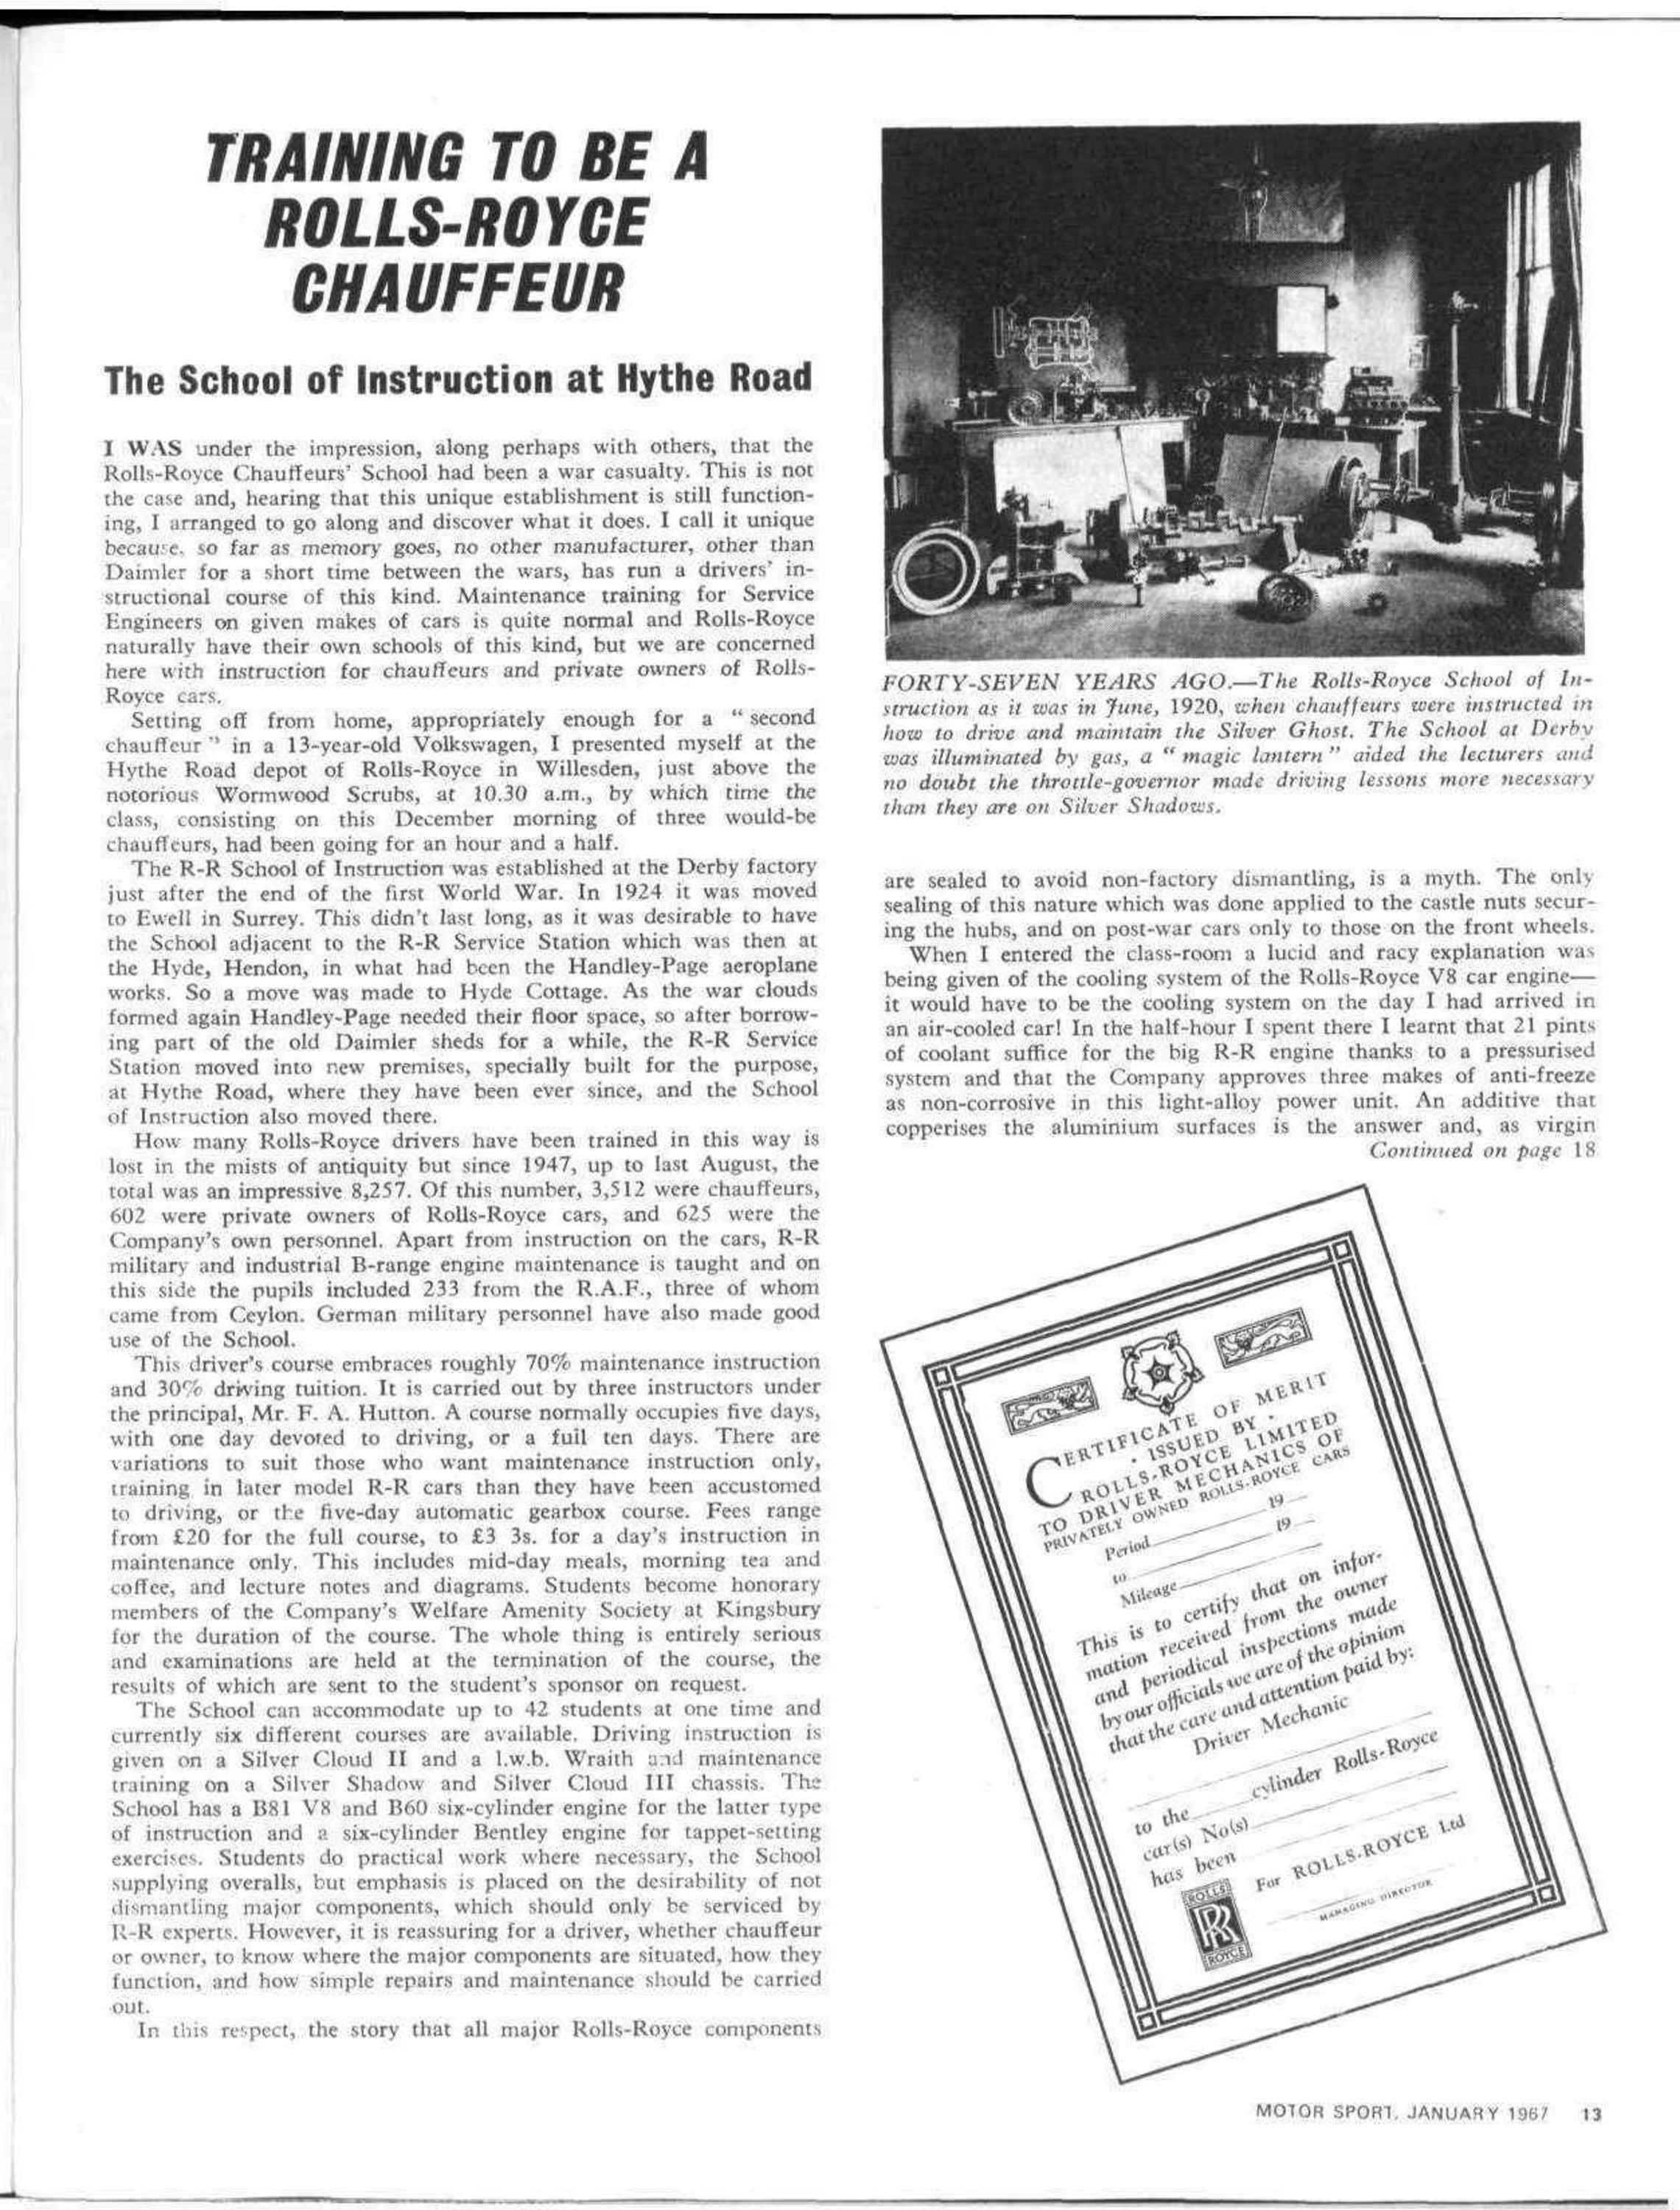 Training to be a Rolls-Royce chauffeur   Motor Sport Magazine Archive